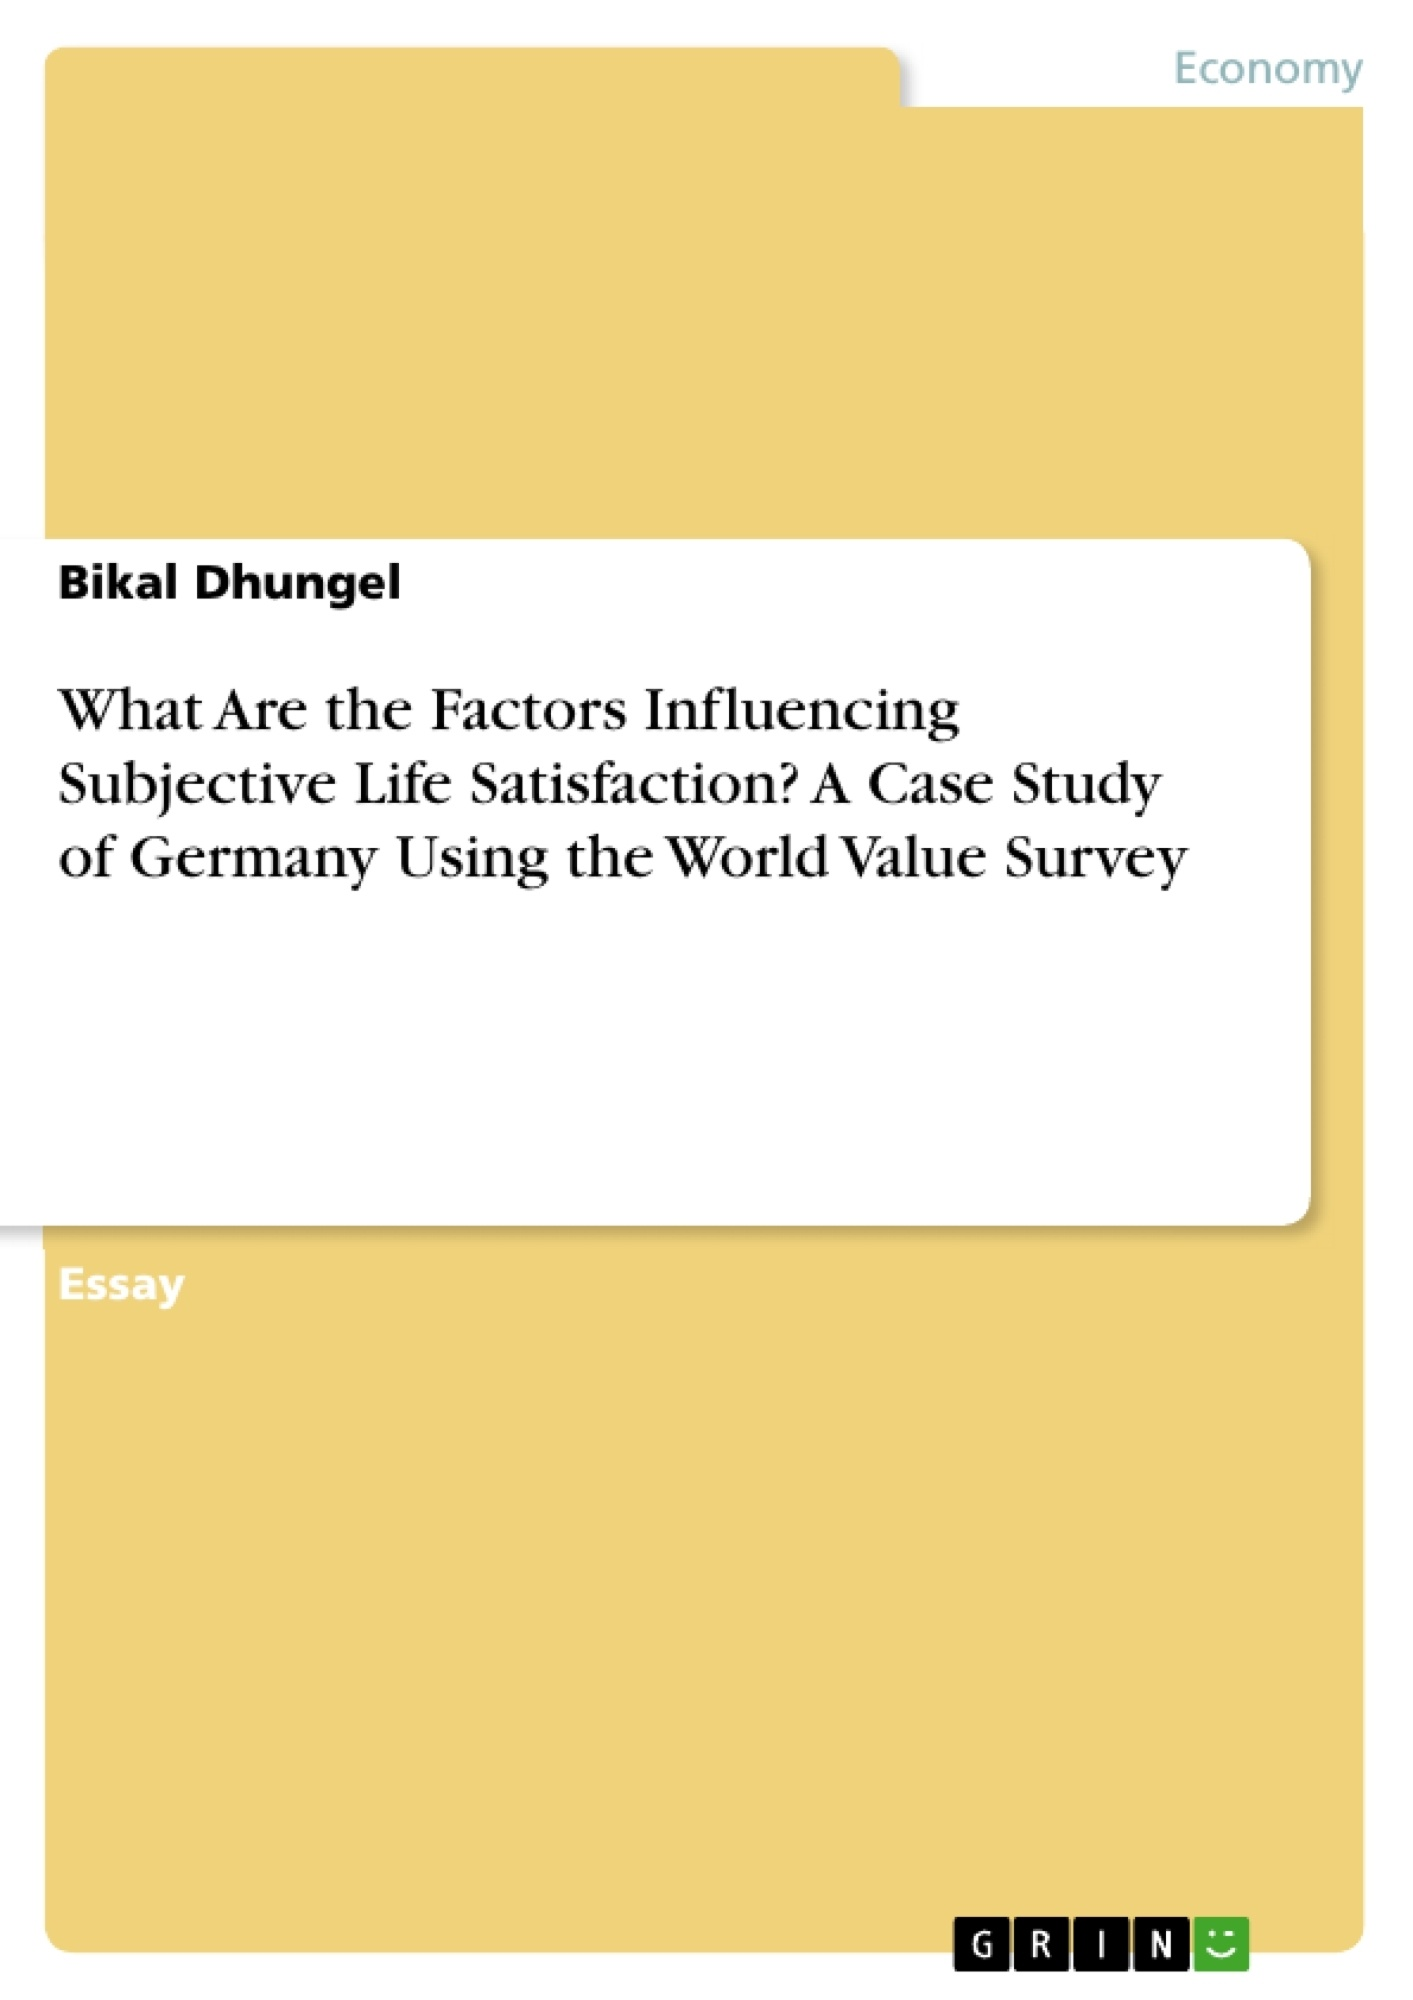 Title: What Are the Factors Influencing Subjective Life Satisfaction? A Case Study of Germany Using the World Value Survey